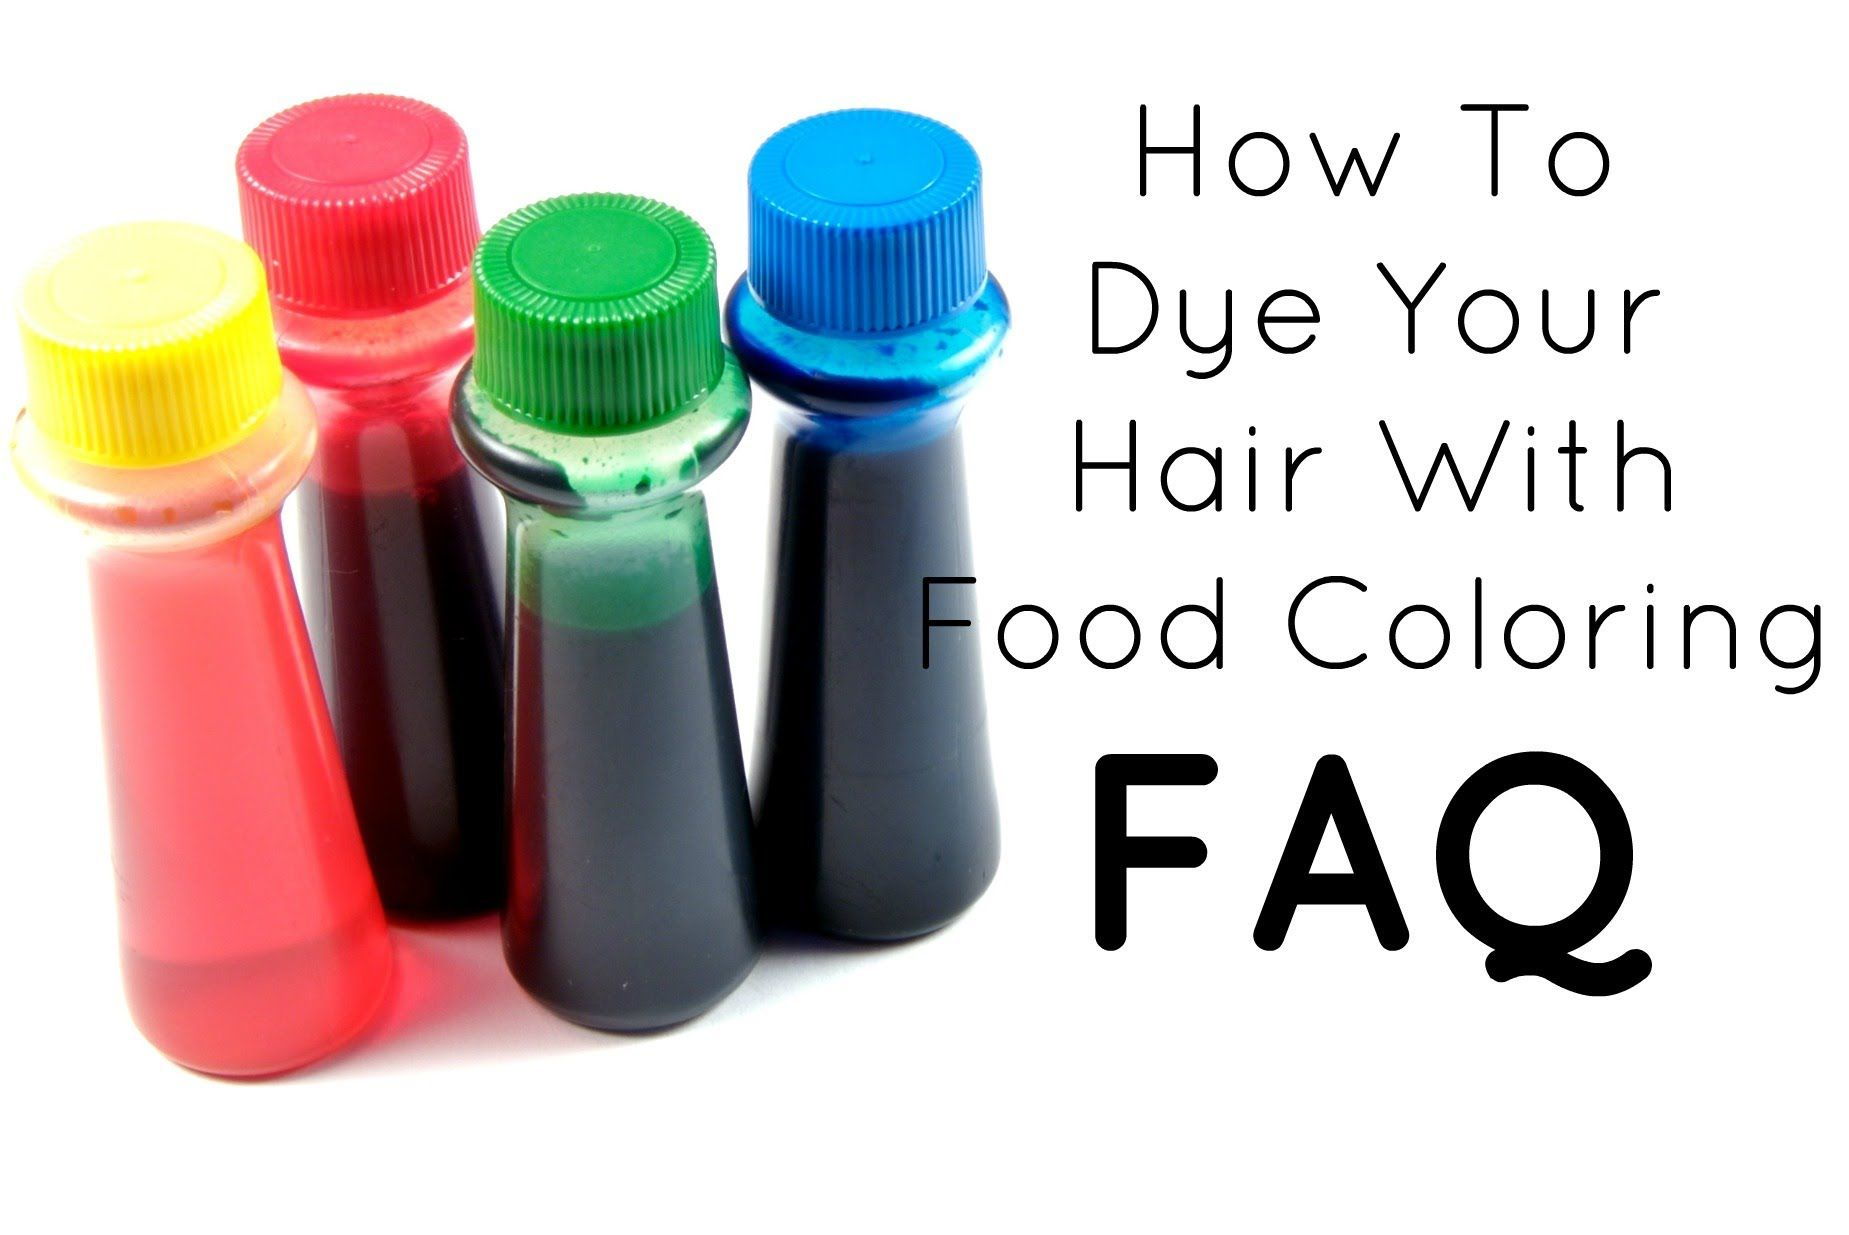 Faq How To Dye Your Hair With Food Coloring Food Coloring Hair Food Coloring Hair Dye Temporary Hair Dye Diy